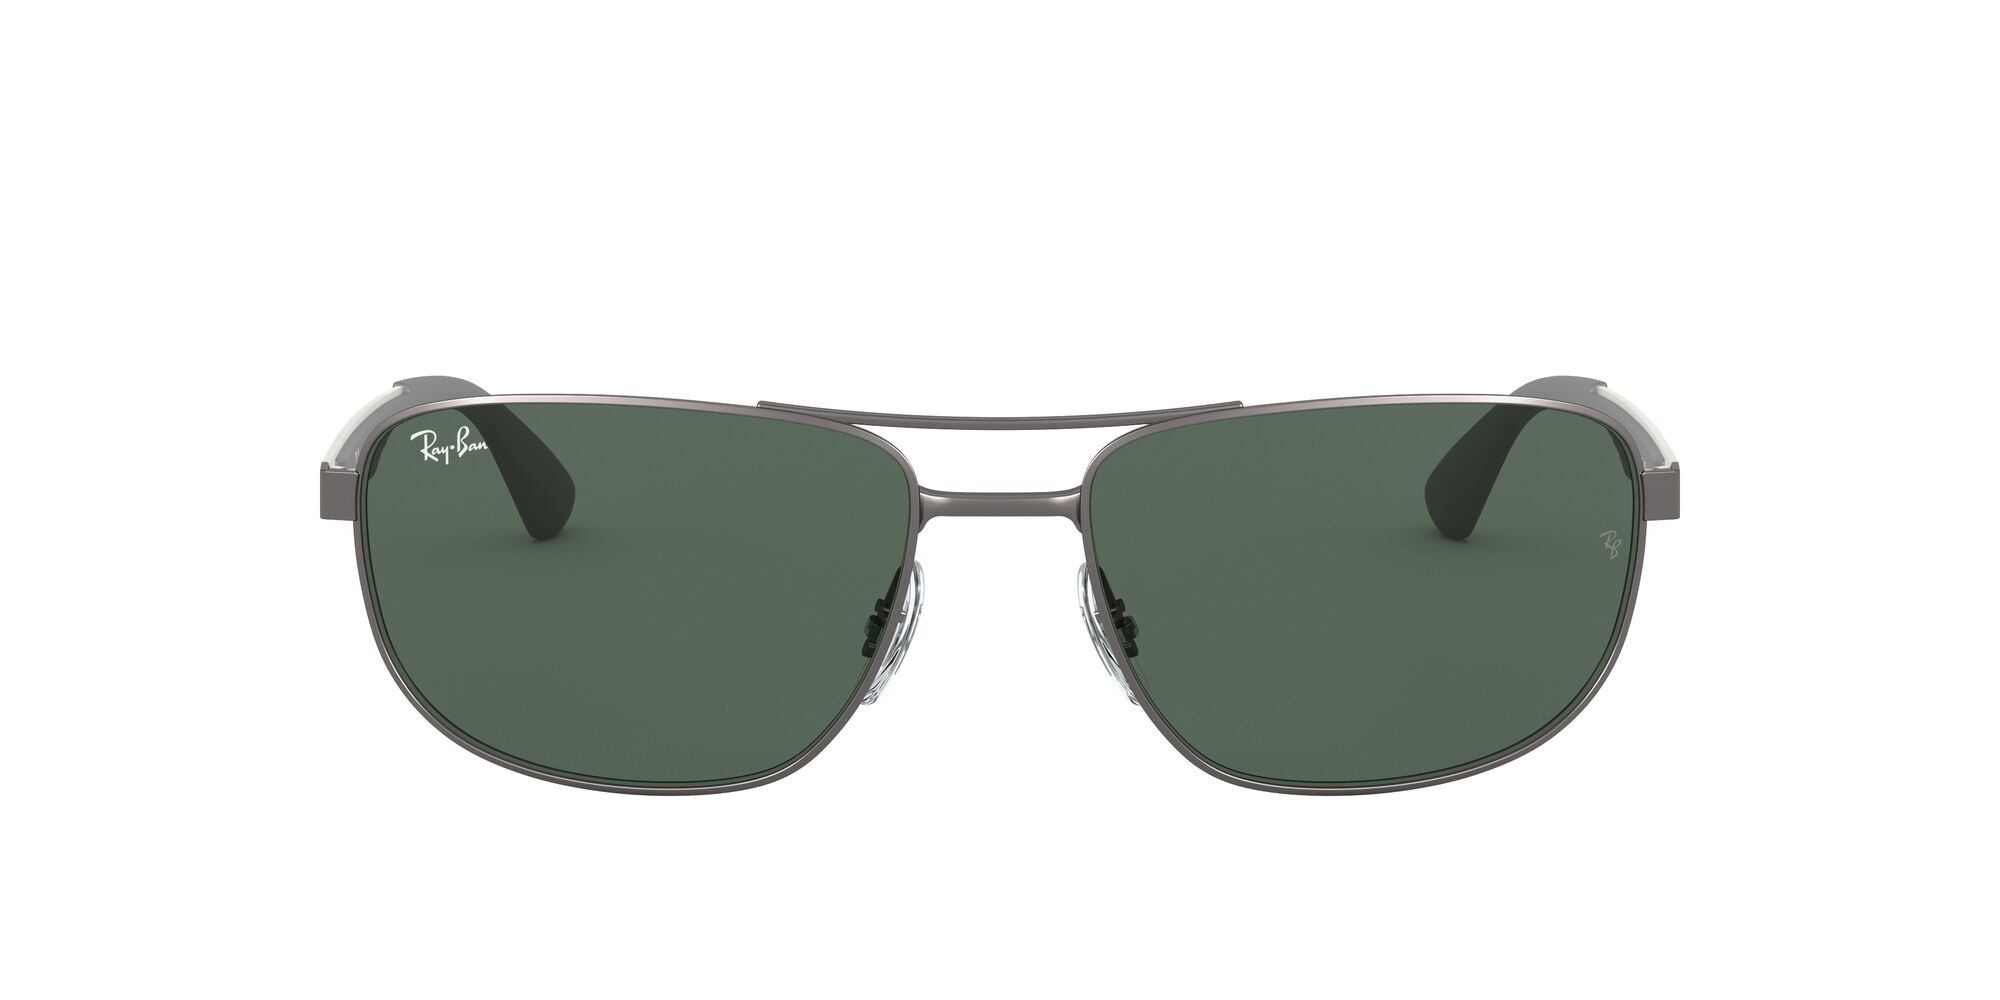 Front Ray-Ban Ray-Ban 0RB3528 029/71 61/17 Grijs, Groen/Groen